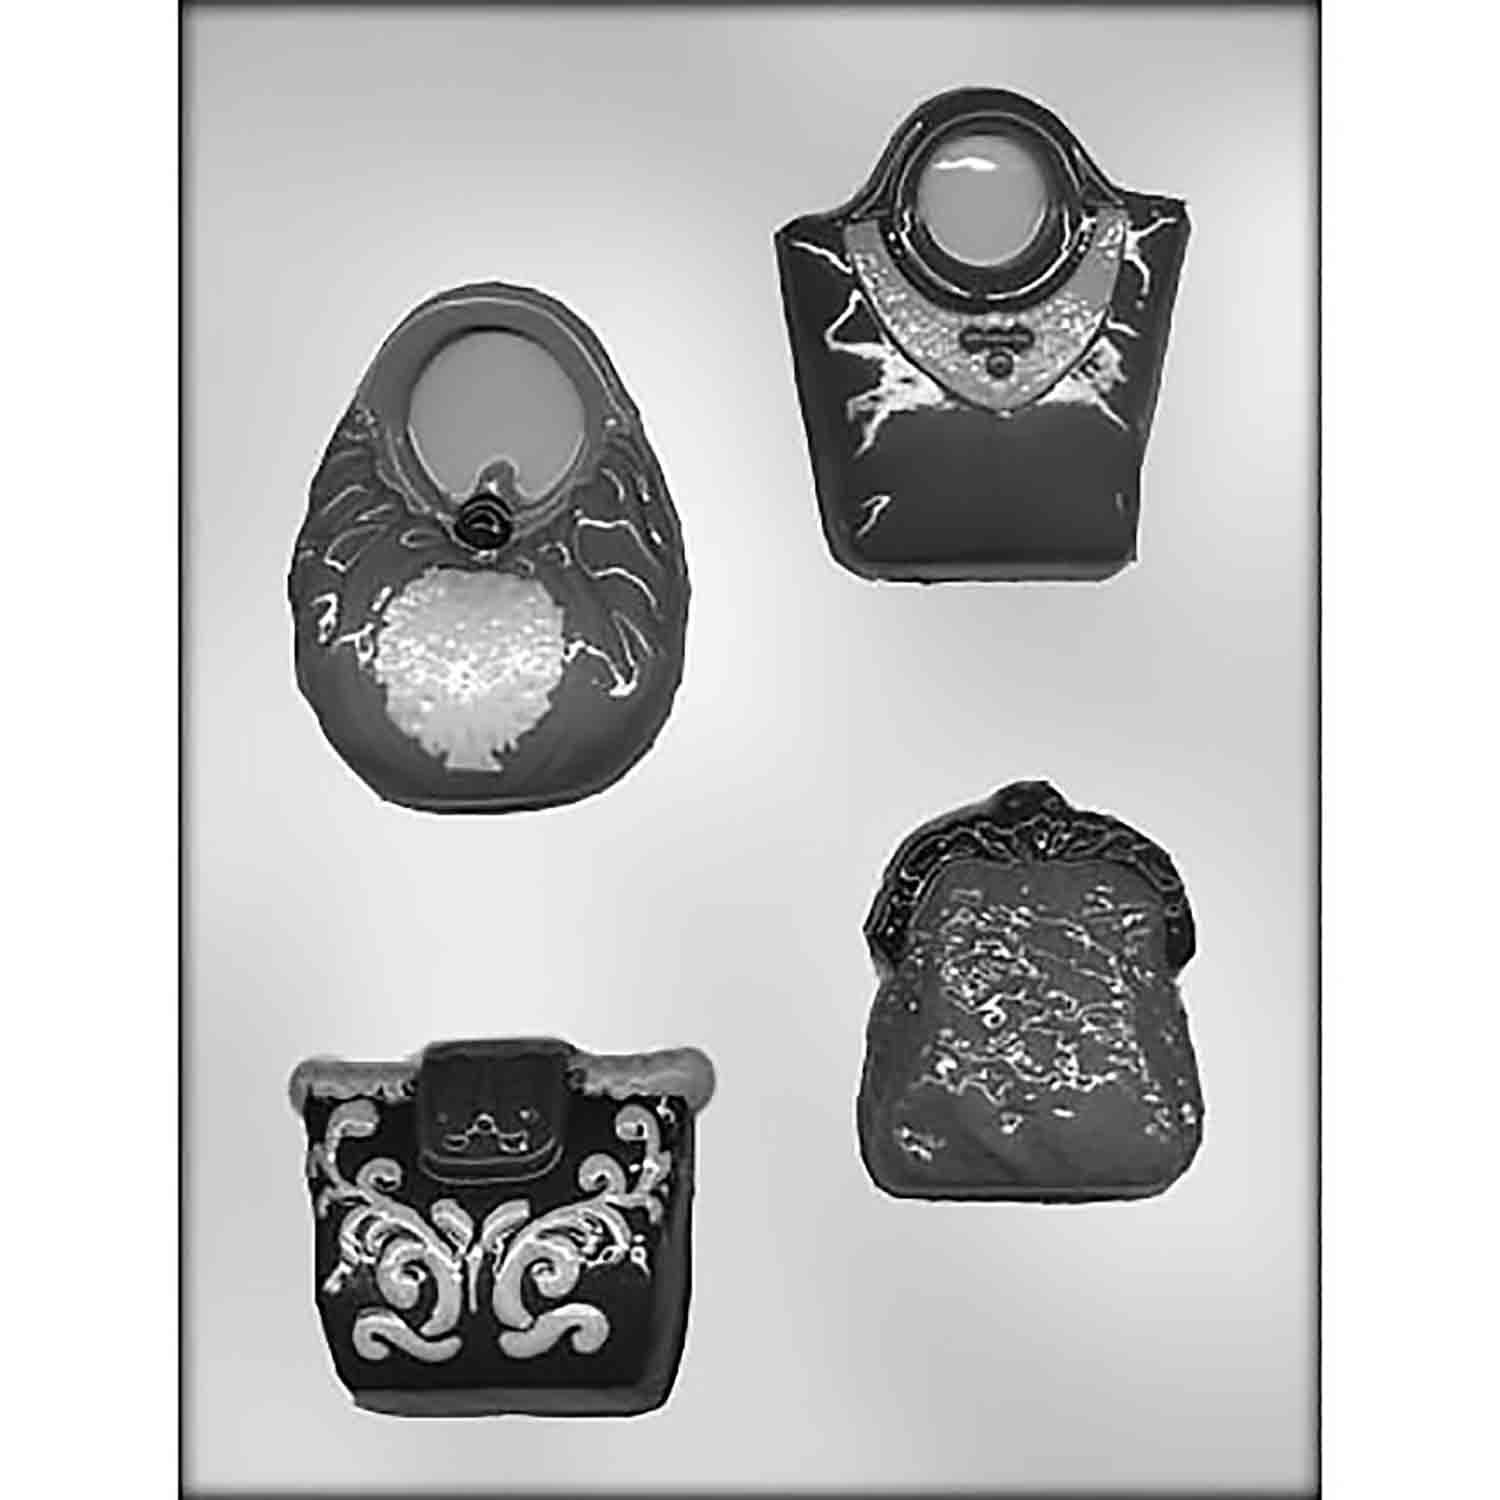 Purse Assortment Chocolate Candy Mold